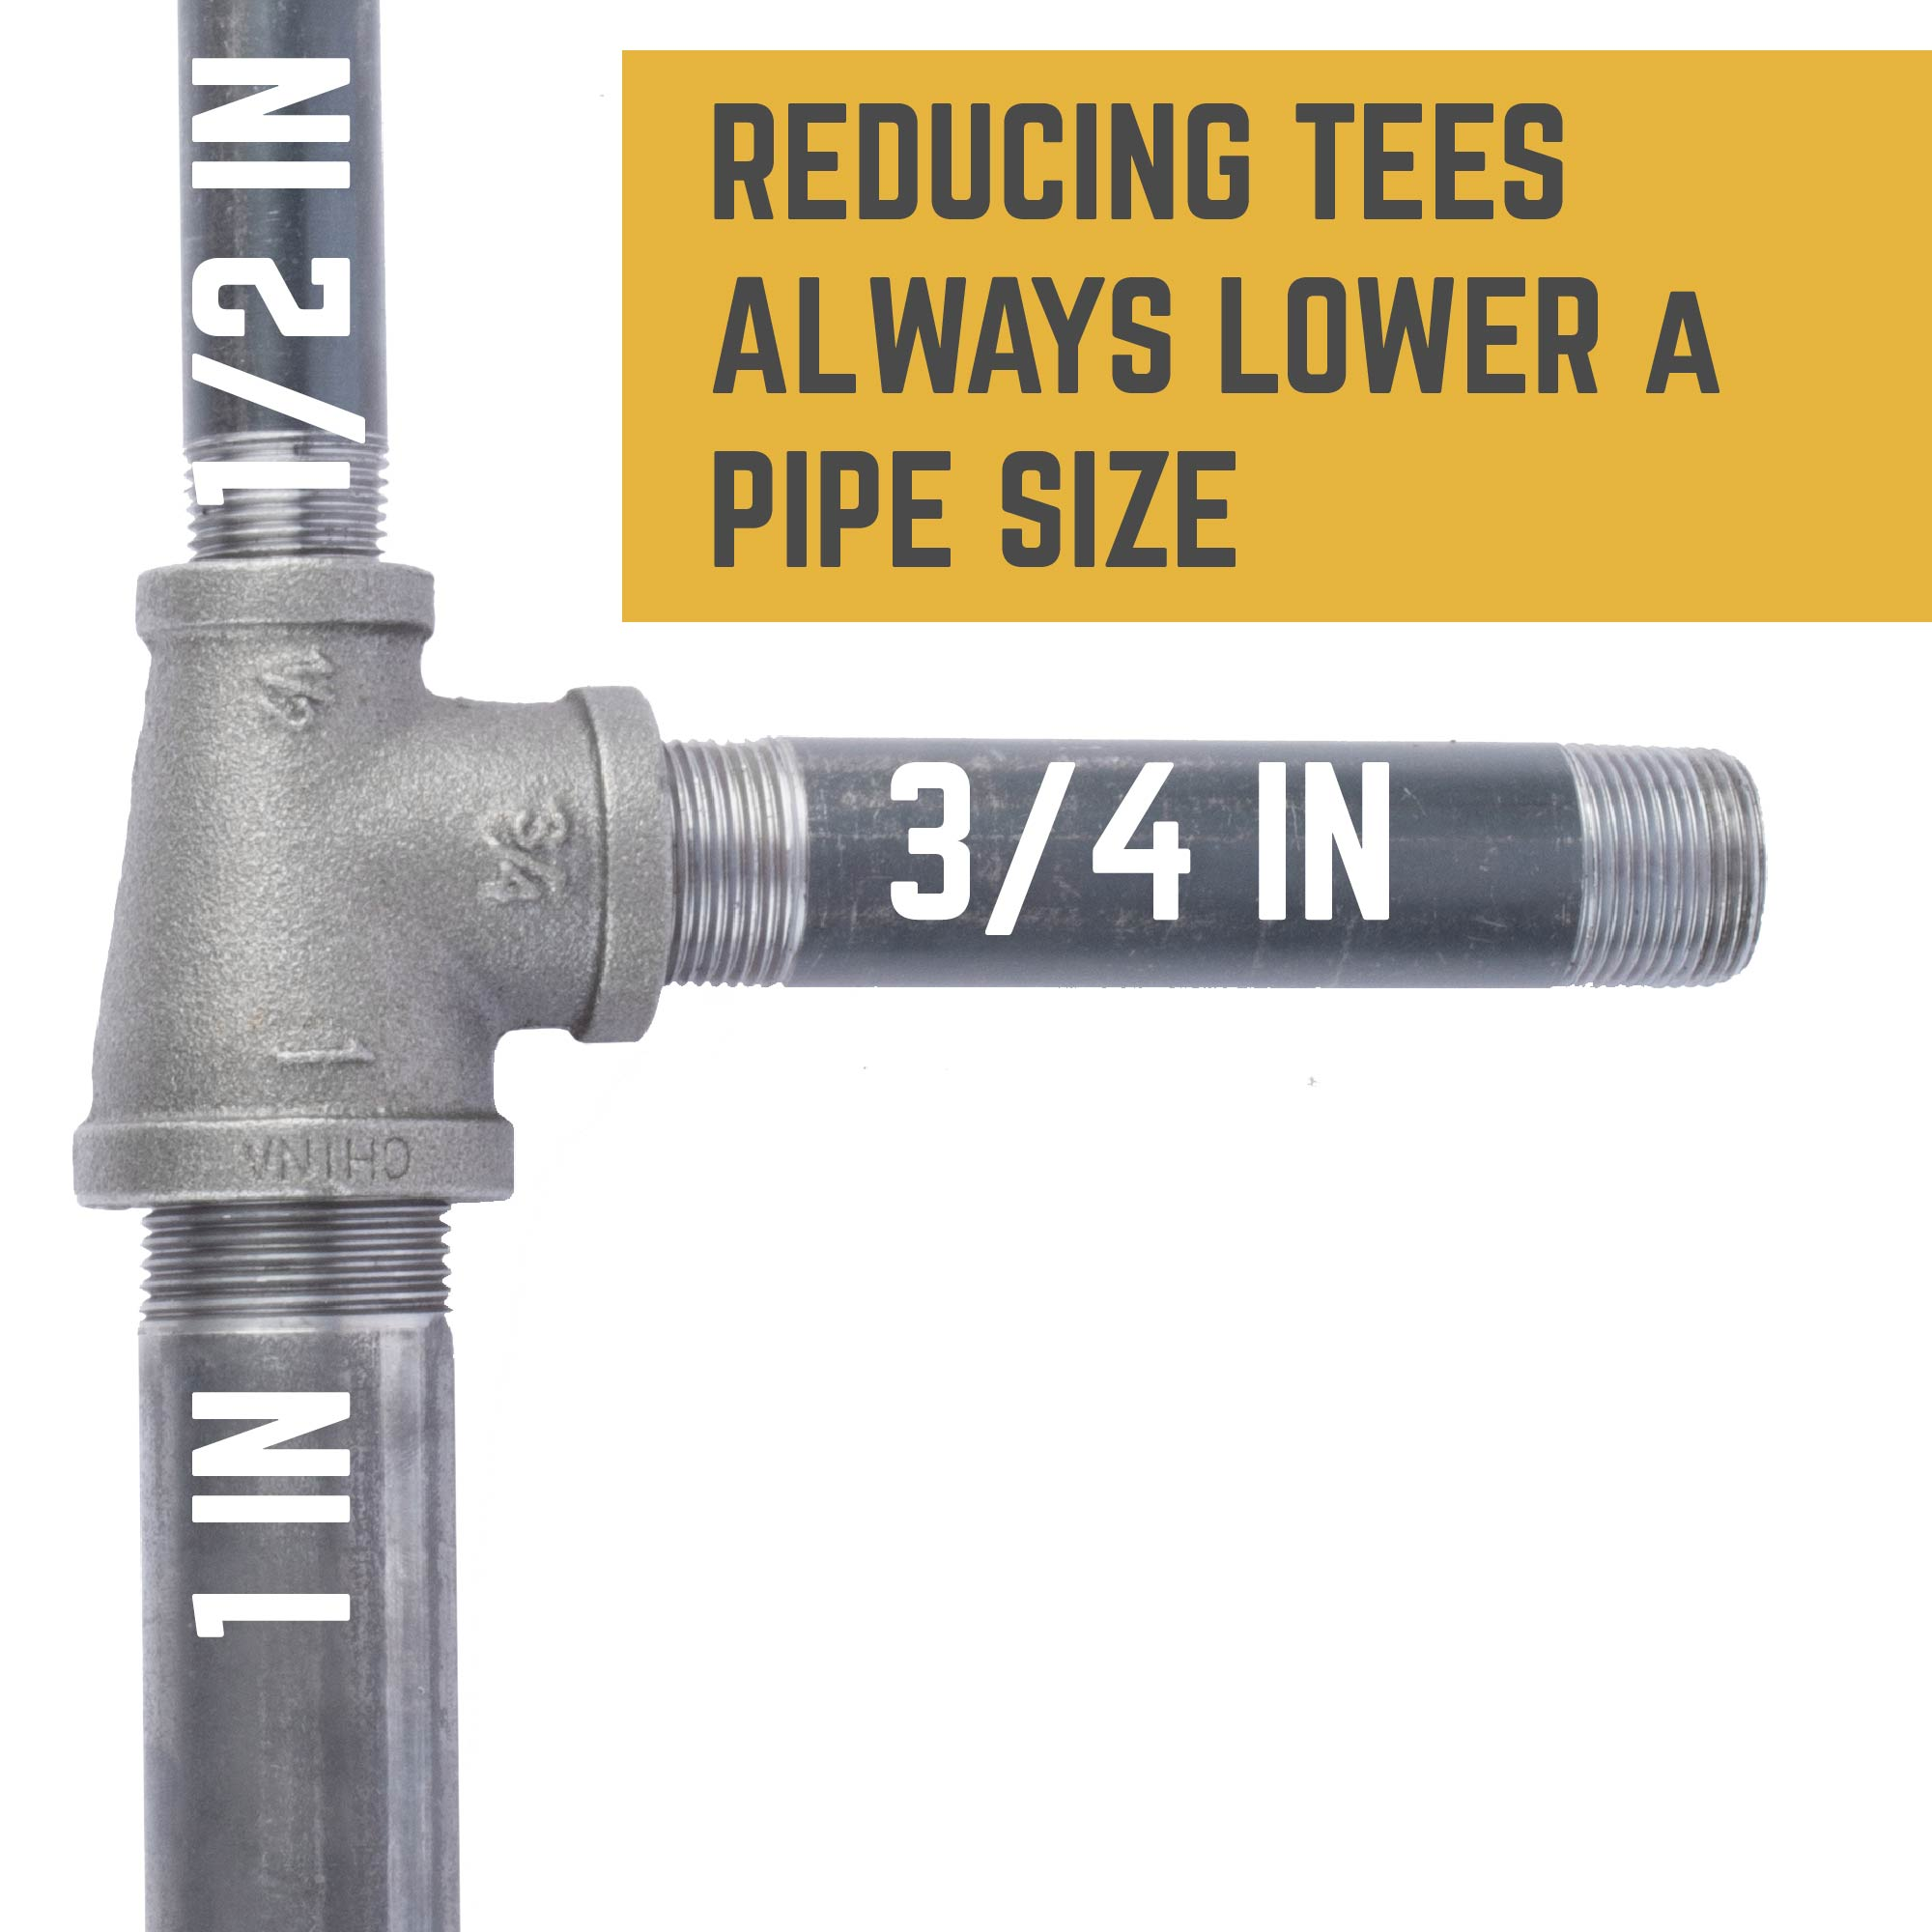 1 IN X 1/2 IN X 3/4 IN REDUCING TEE